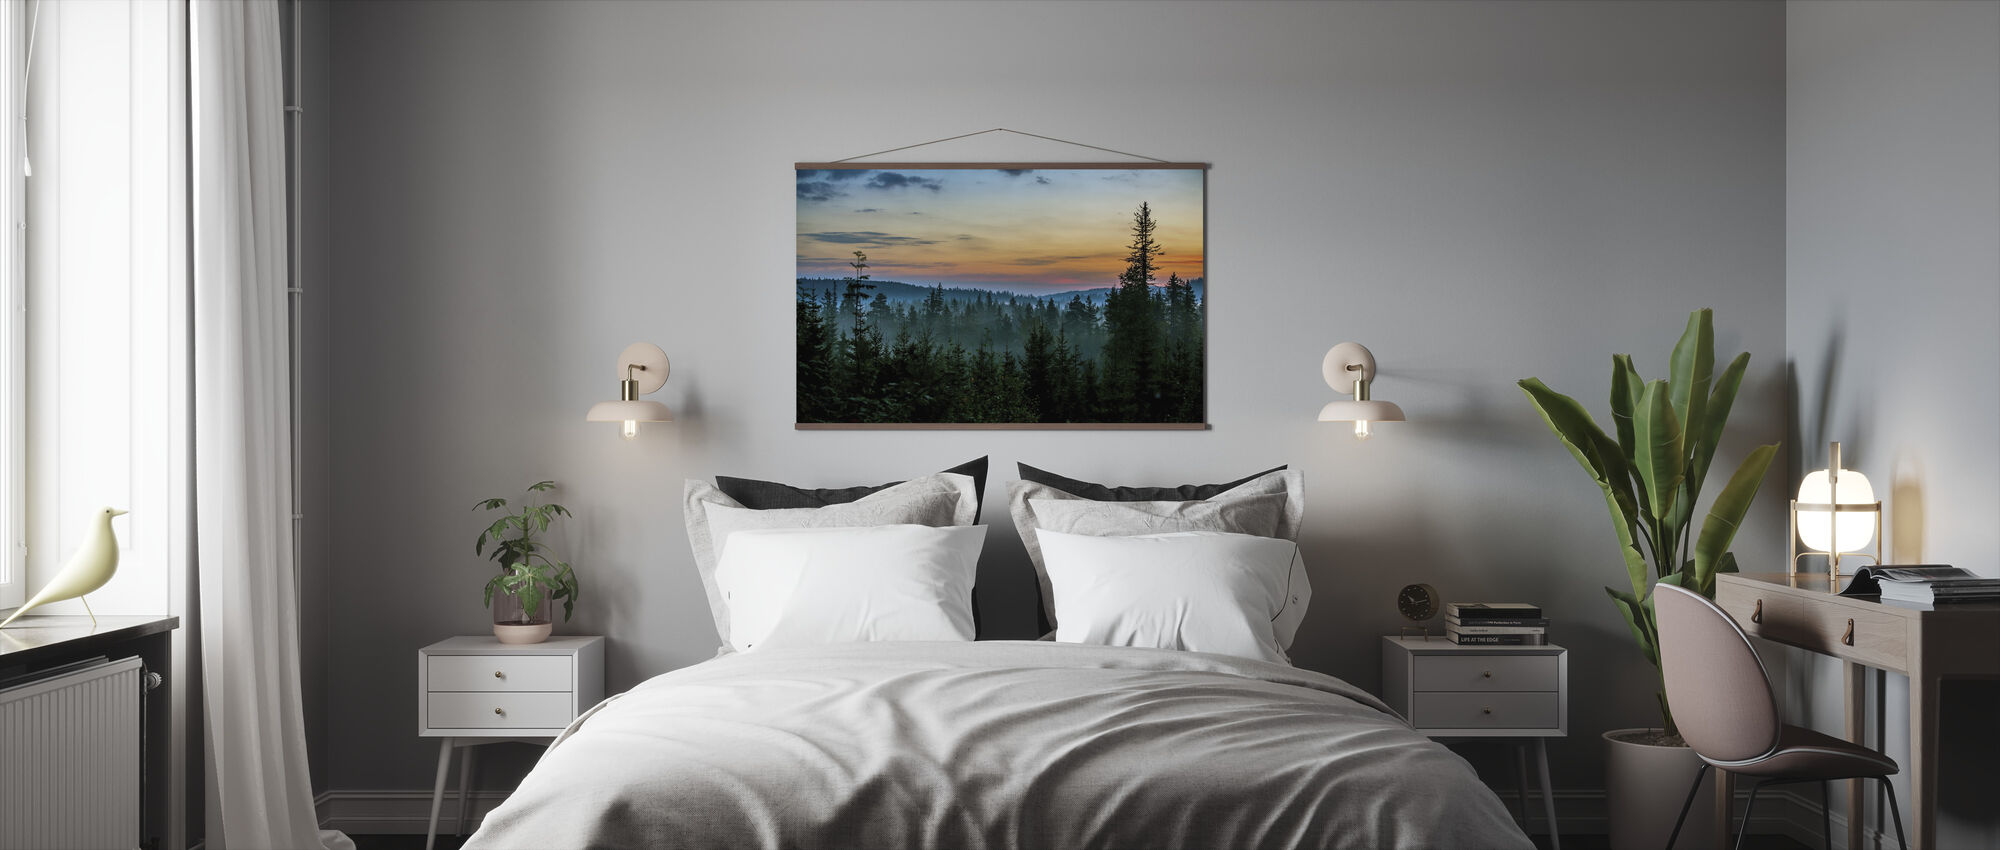 Early Morning in Fir Forest - Poster - Bedroom